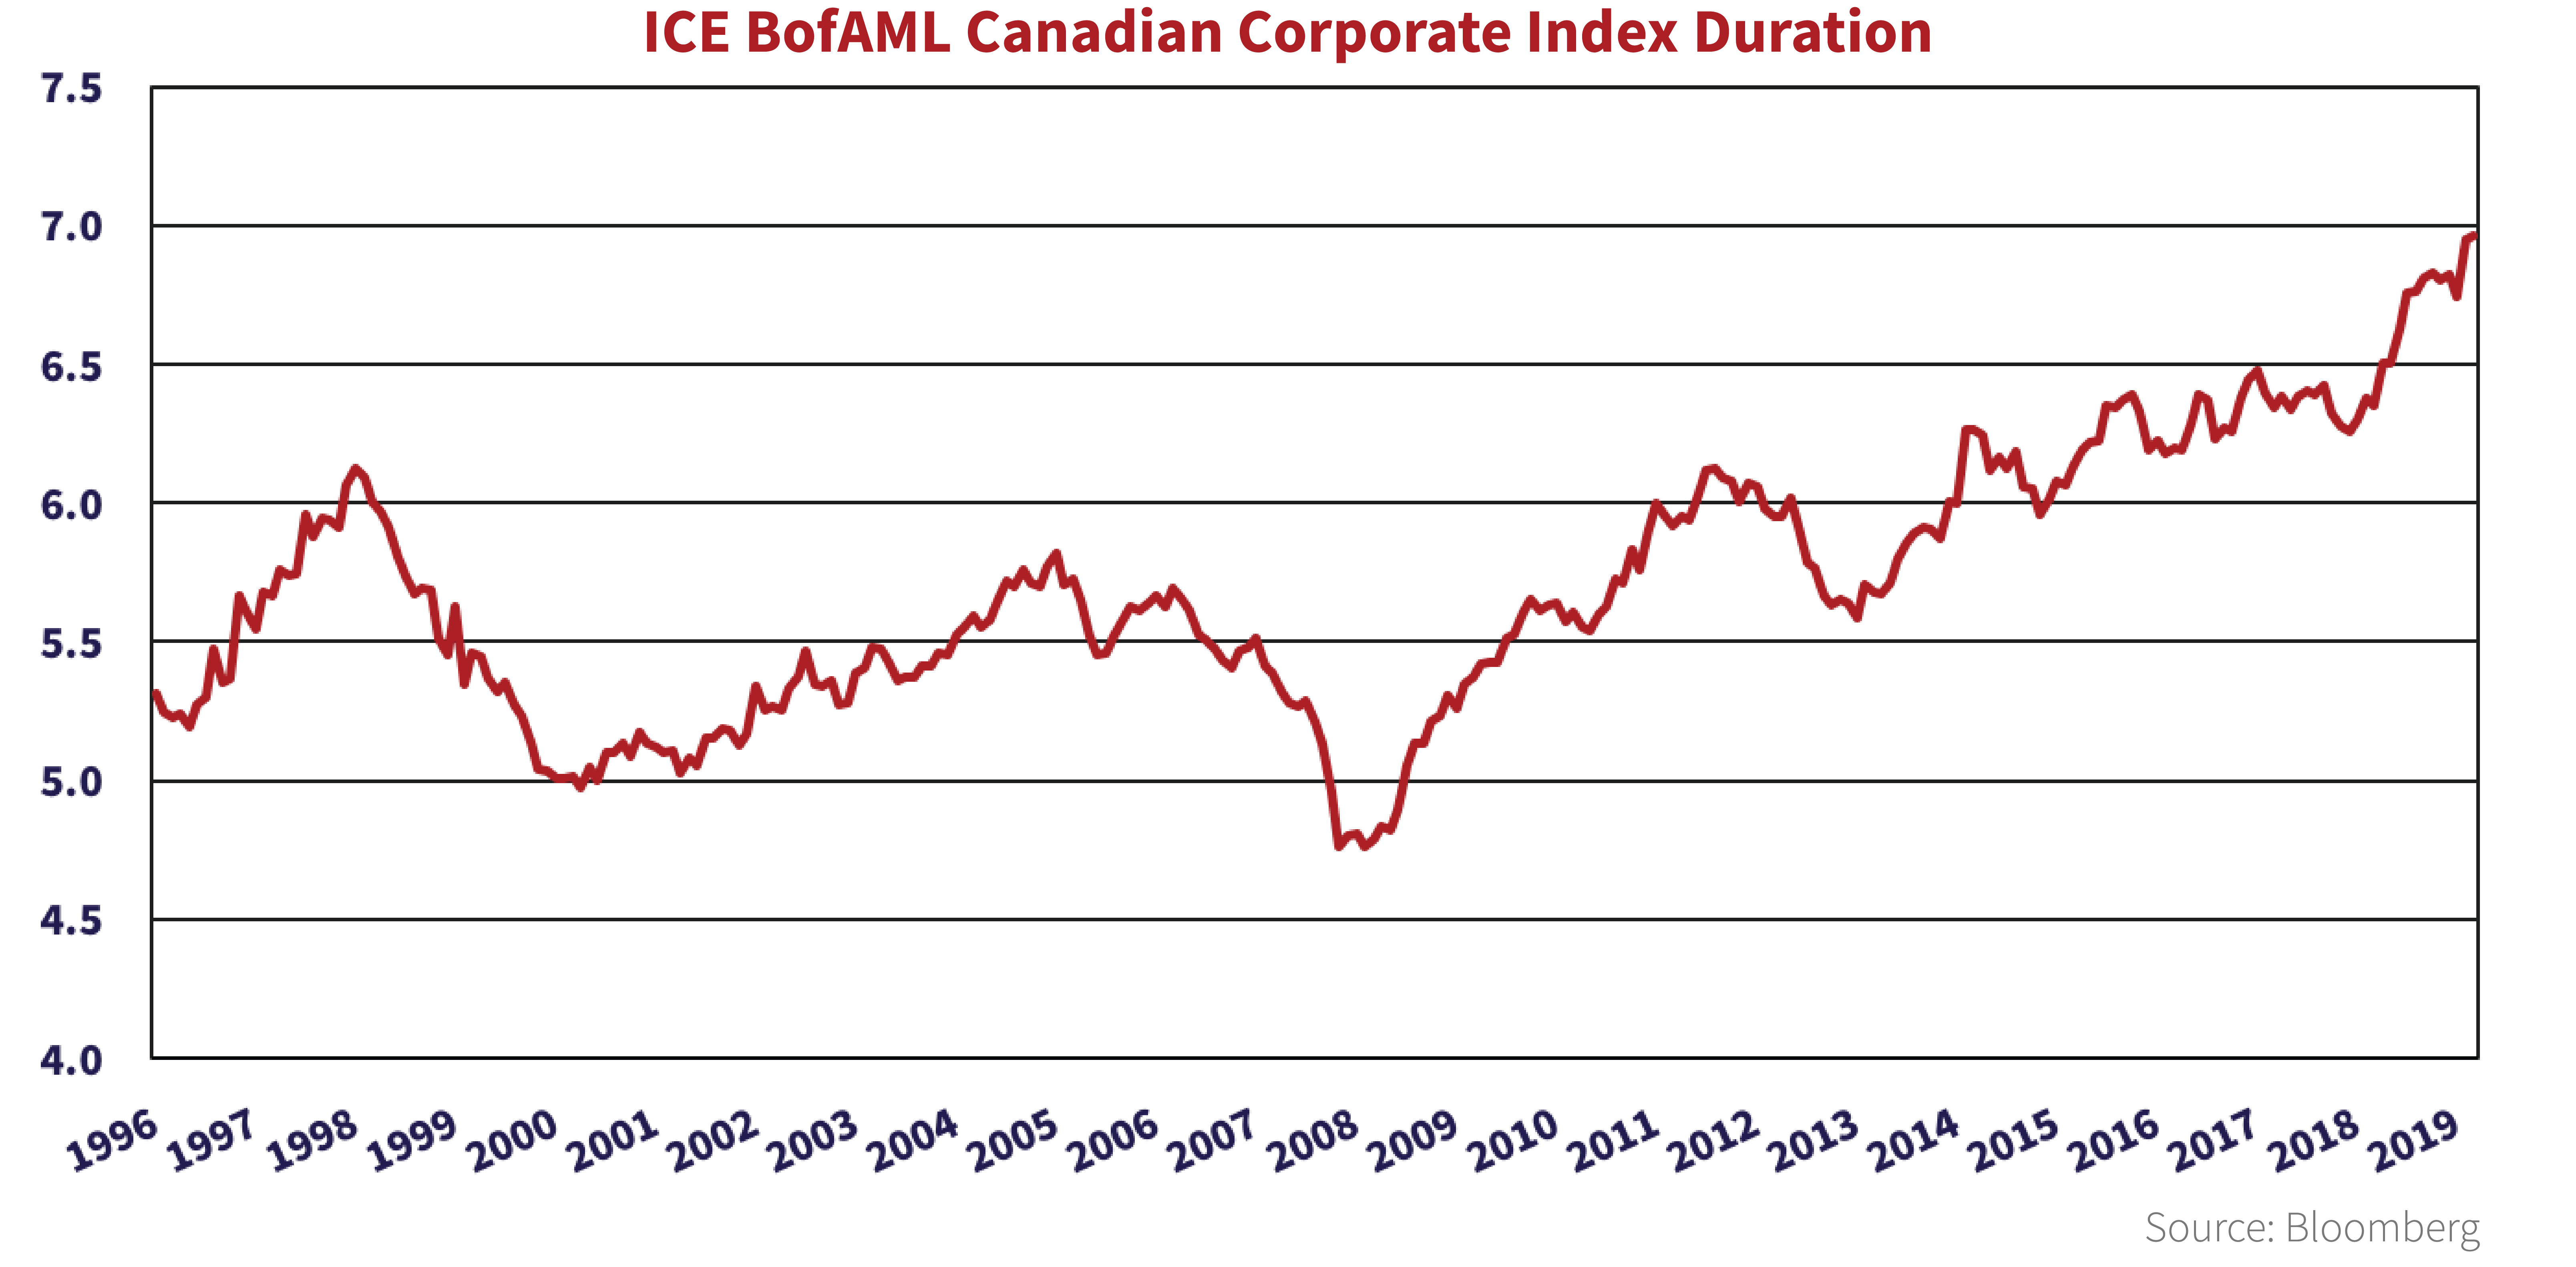 The chart shows the ICE BofAML Canadian Corporate Bond Index duration at 7 years.